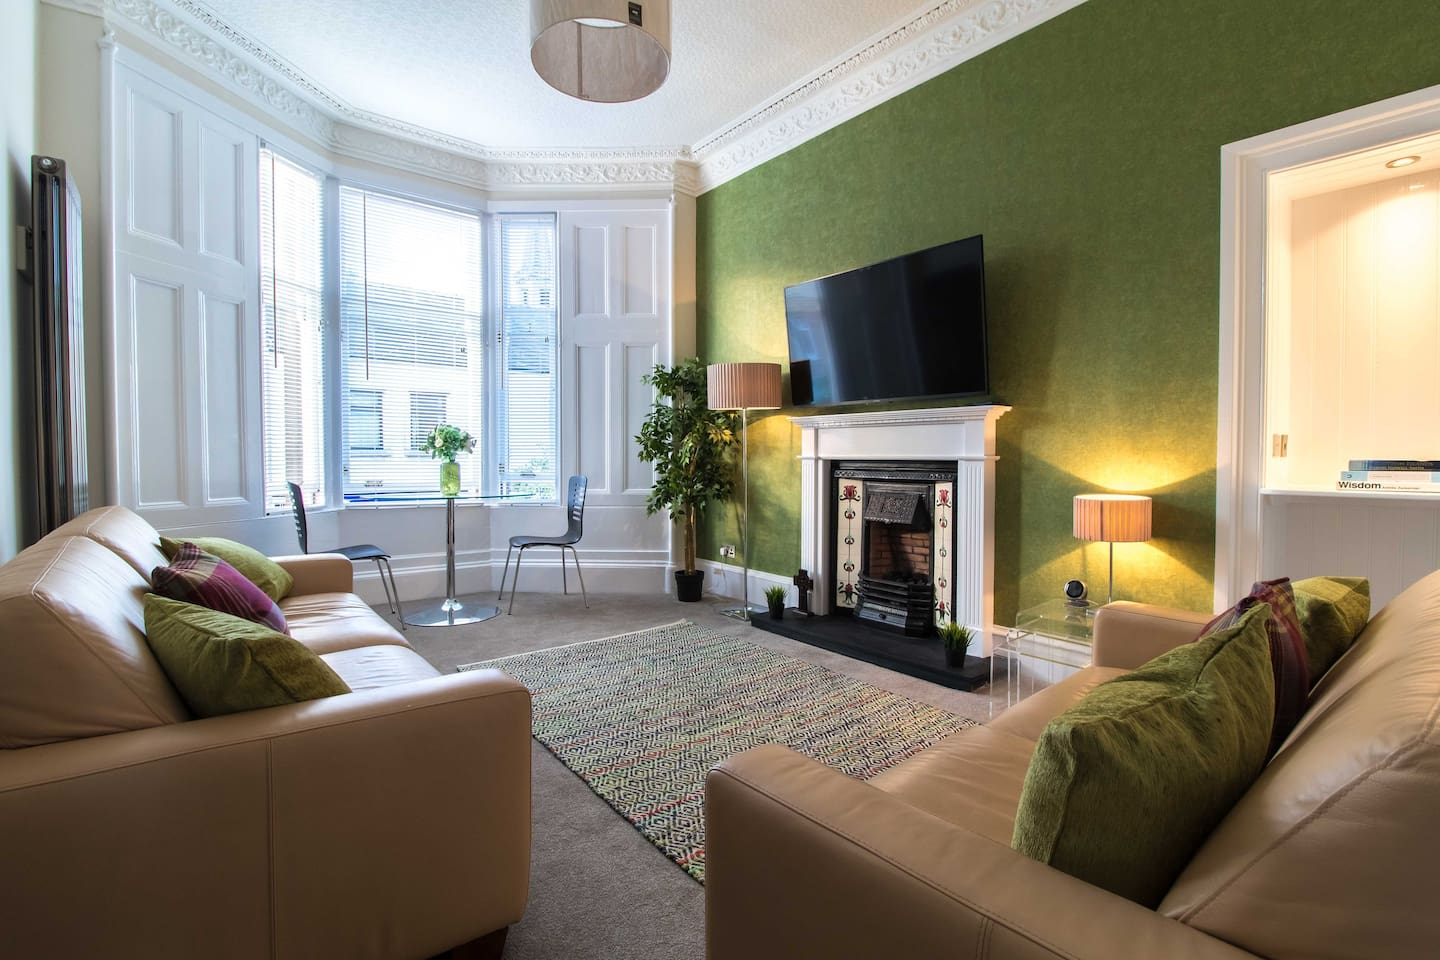 Boutique Victorian Living room with bay window dining. Featuring original decorative fireplace, computer desk centre, Virgin Fibre Broadband and Ethernet port, along with leather two and three seater sofas beside  traditional  column radiators.